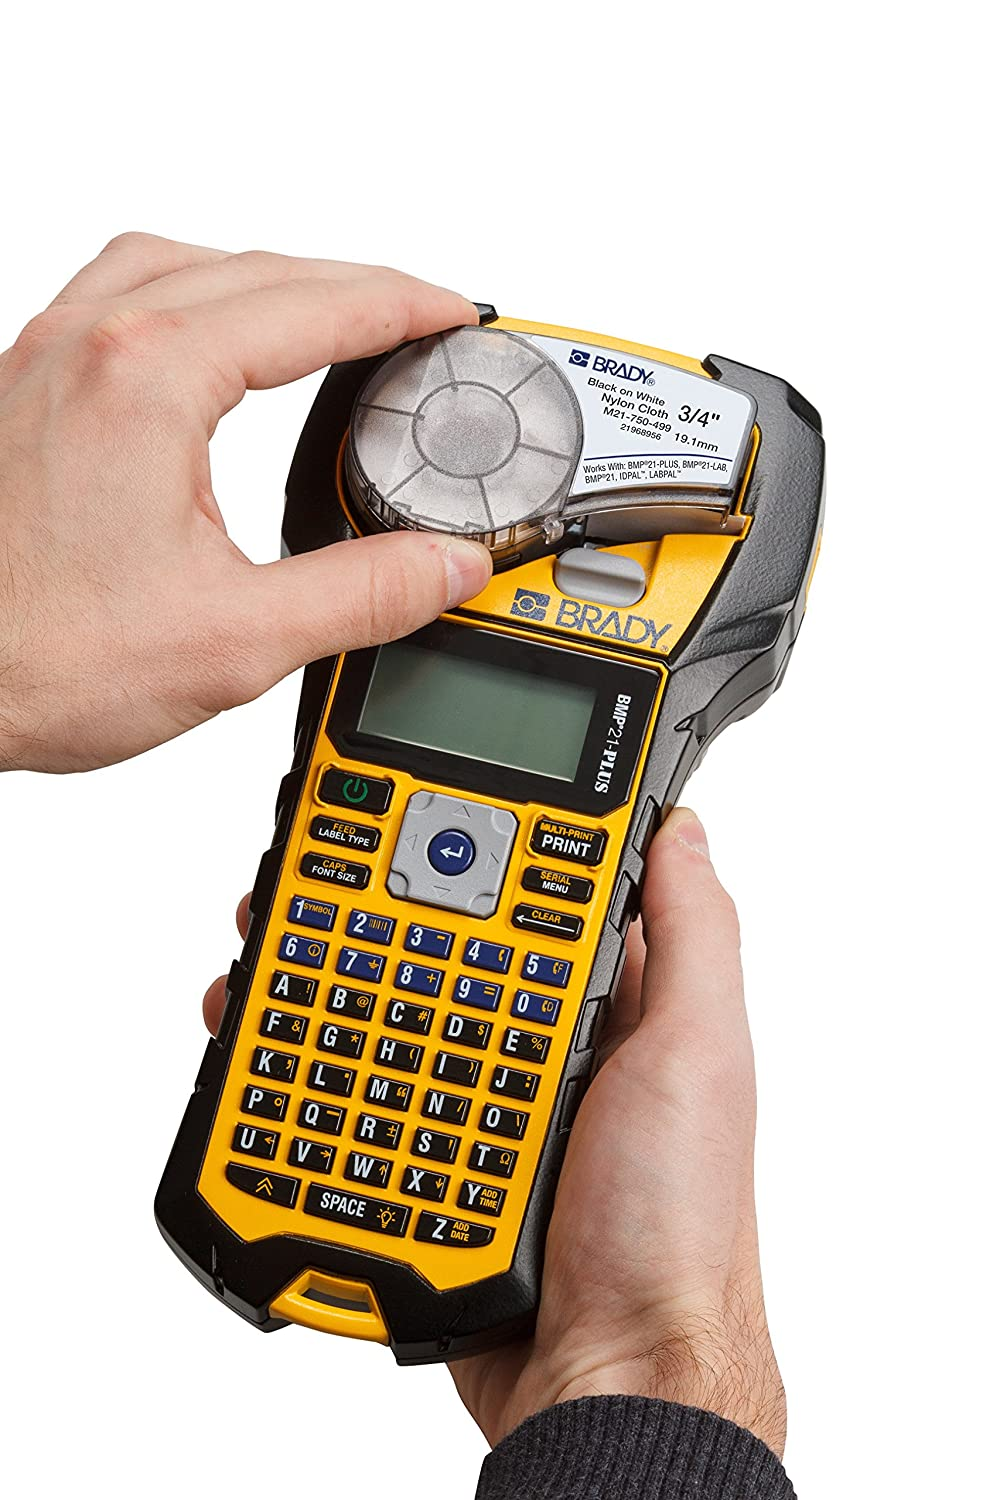 Multi-Line Print BRADY BMP21-PLUS Handheld Label Printer with Rubber Bumpers 6 to 40 Point Font